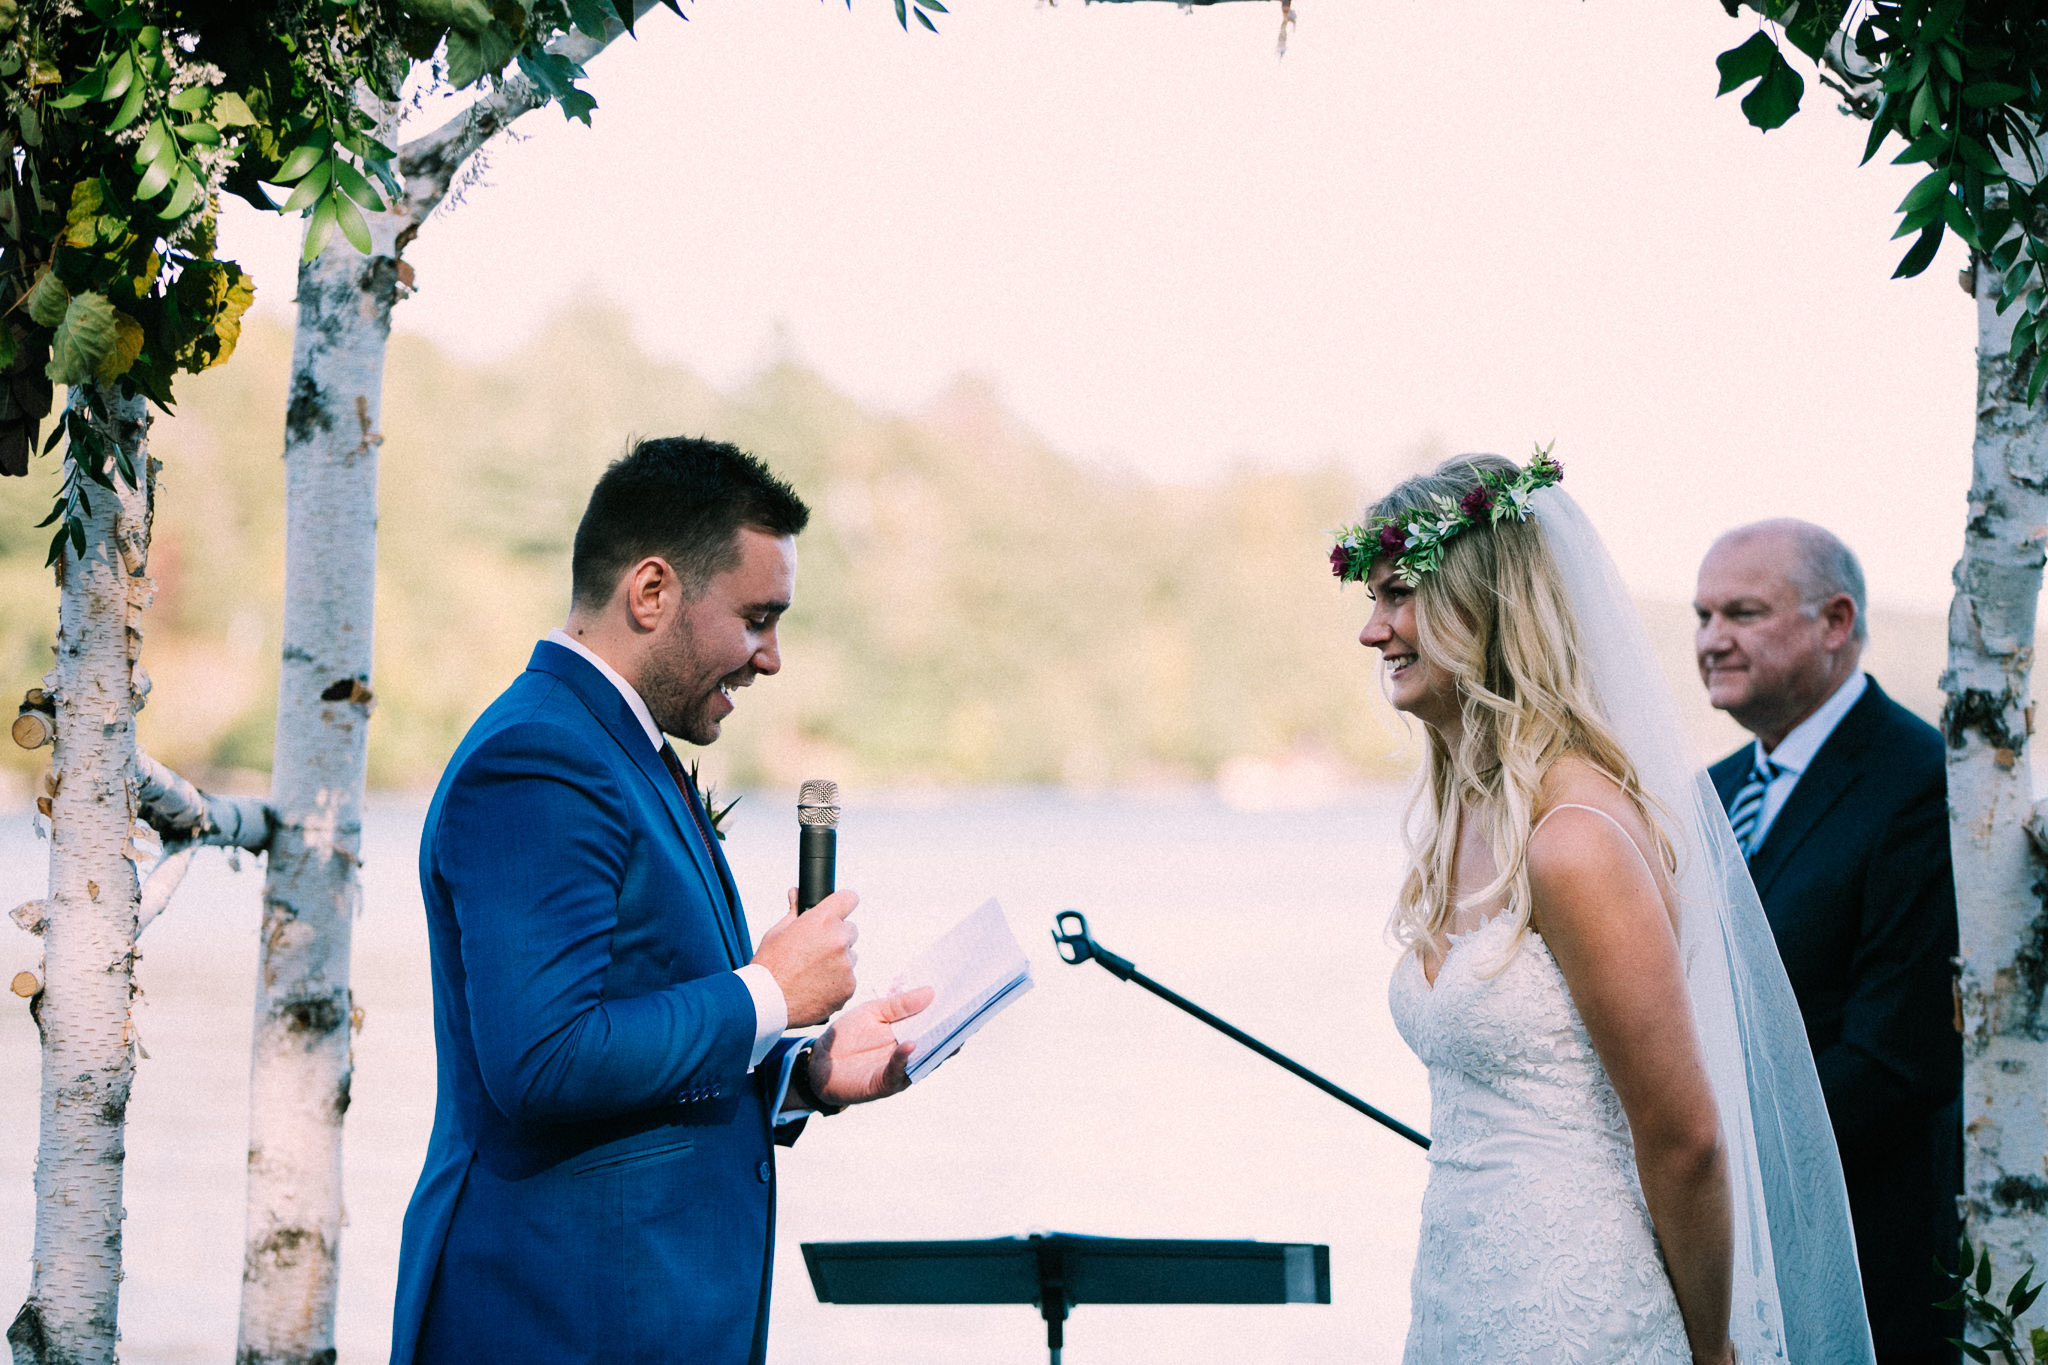 Muskoka lakeside wedding at Port Cunnington Lodge by Max Wong Photo (49)